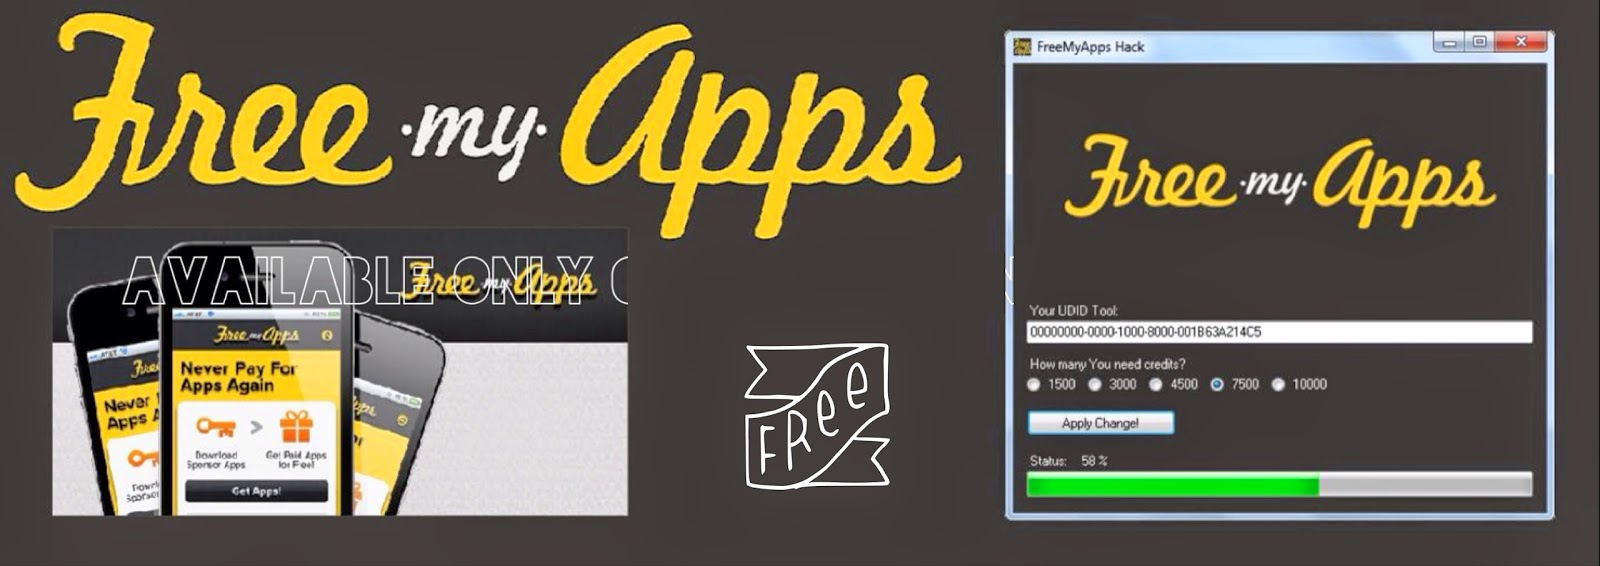 Freemyapps Hack Tool - Freemyapps Hack